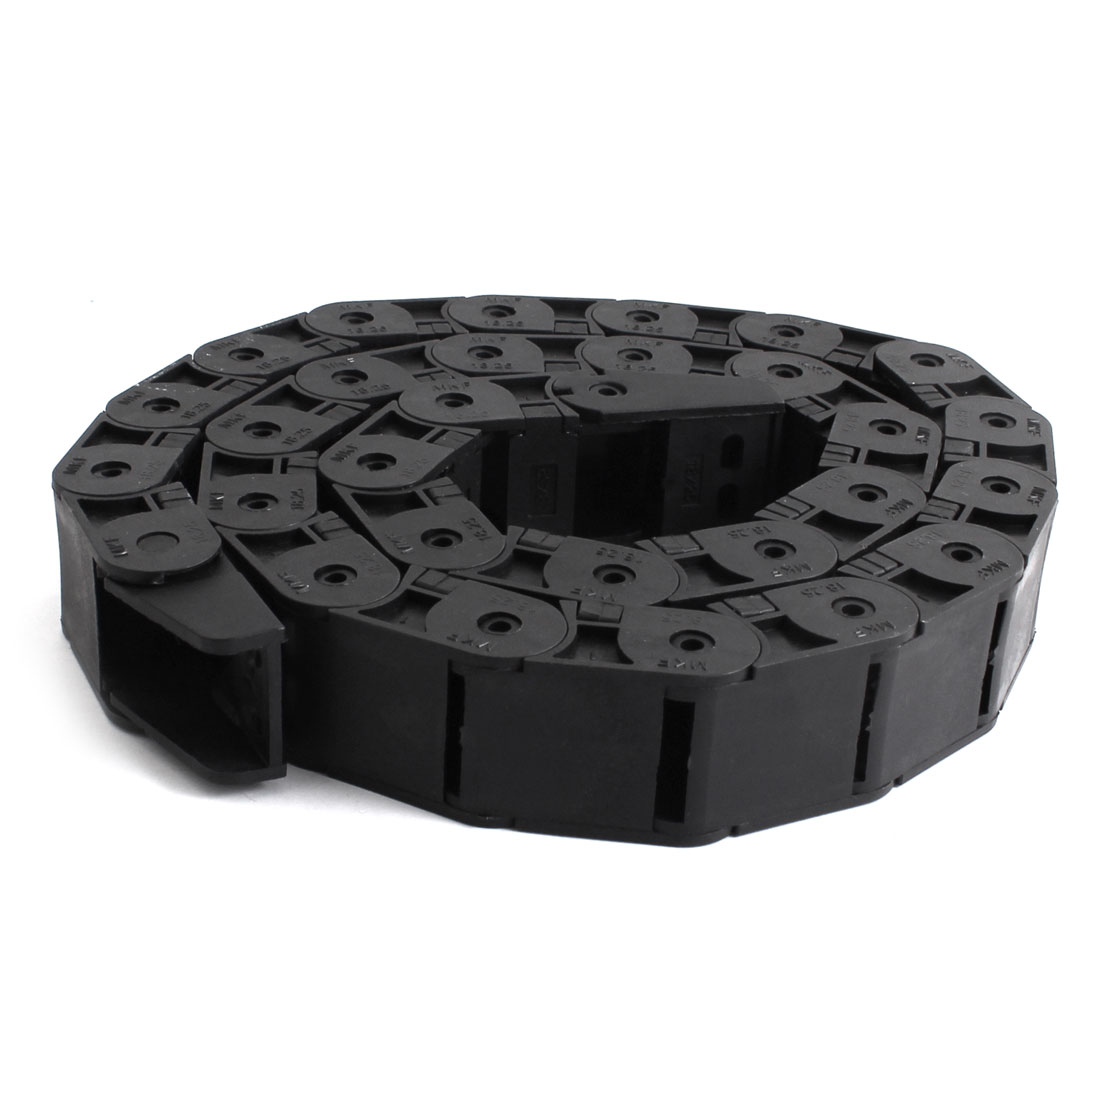 "1m 100cm 40"" Length Open Type Plastic Cable Drag Chain Wire Carrier Nested Black 18mm x 25mm"